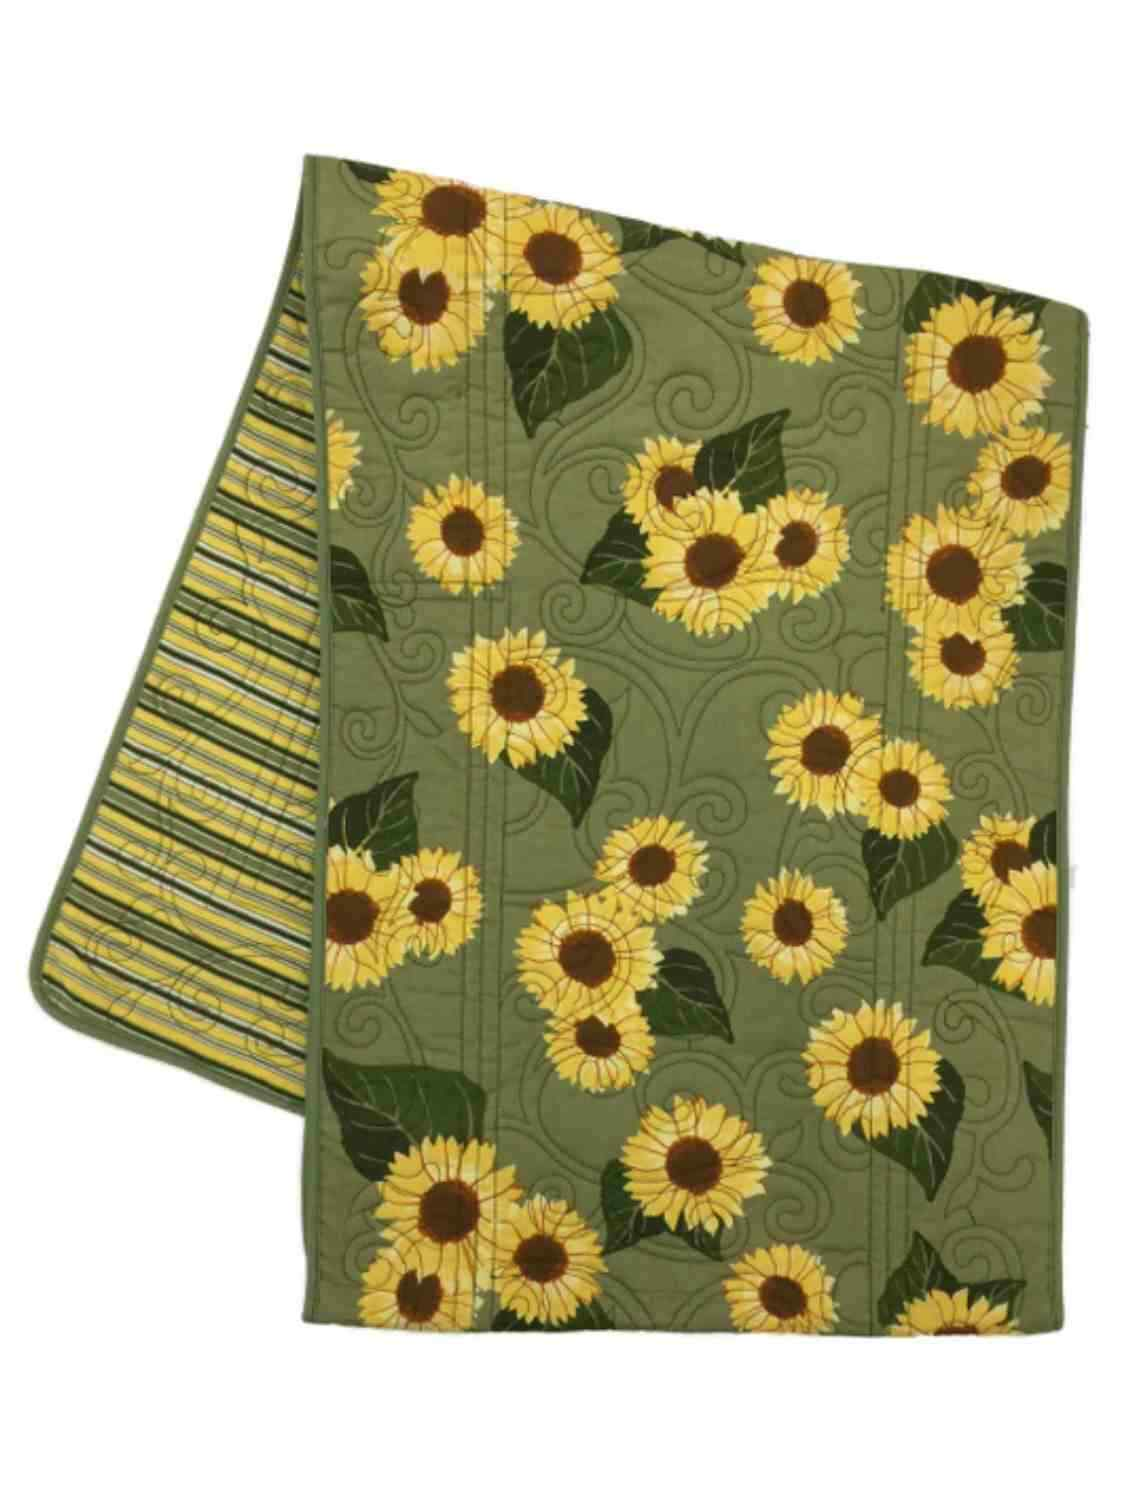 Croft & Barrow Reversible Quilted Table Runner Sunflowers & Stripes 12x72